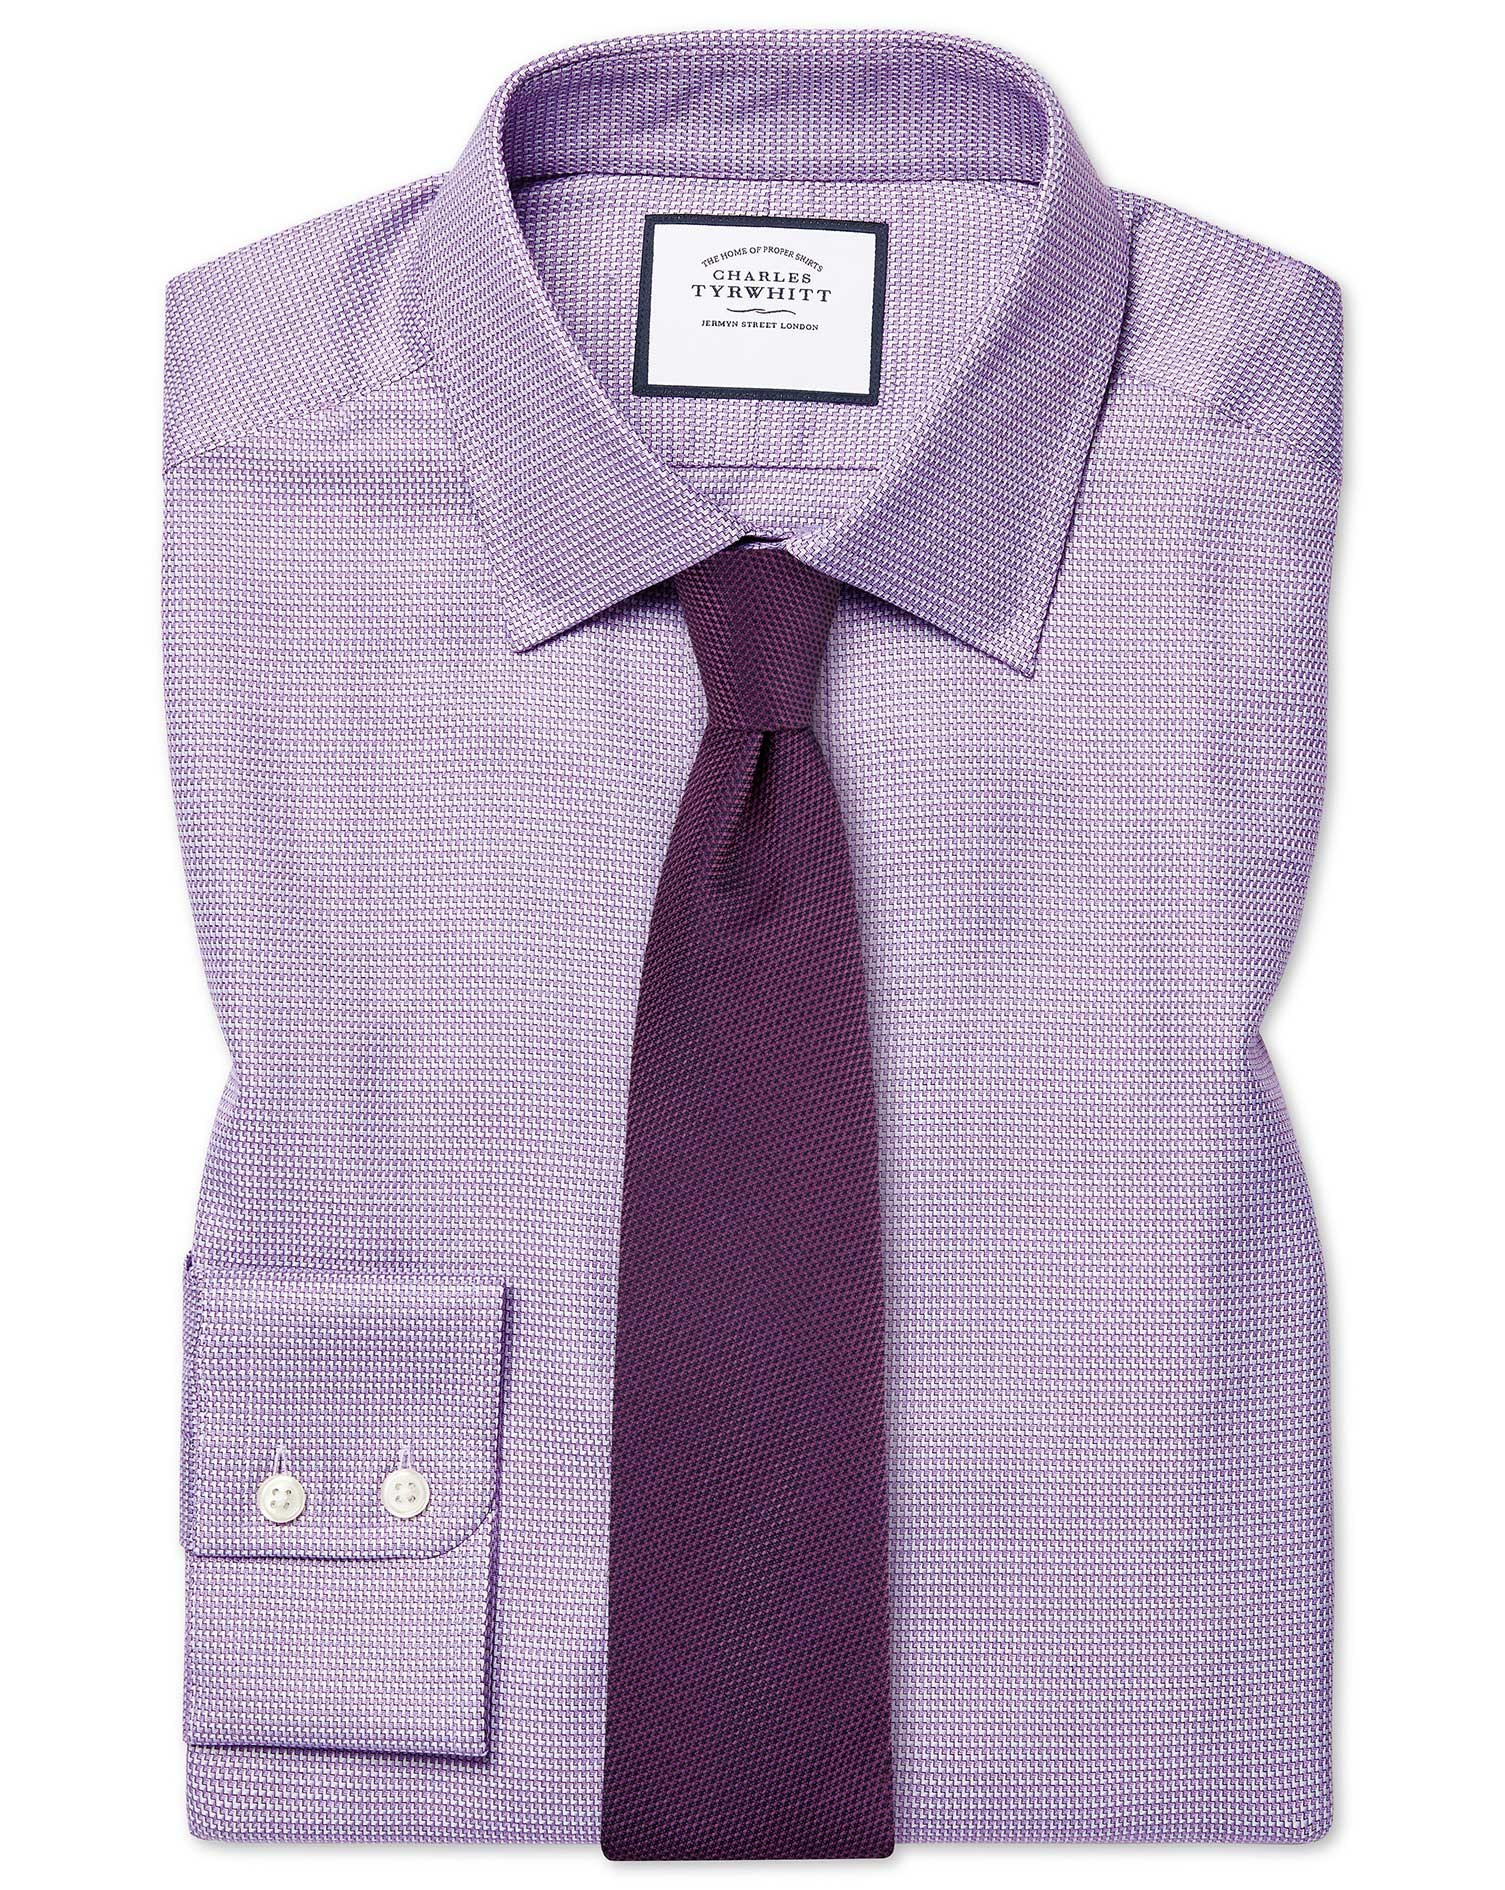 Slim Fit Egyptian Cotton Chevron Purple Formal Shirt Double Cuff Size 17.5/34 by Charles Tyrwhitt